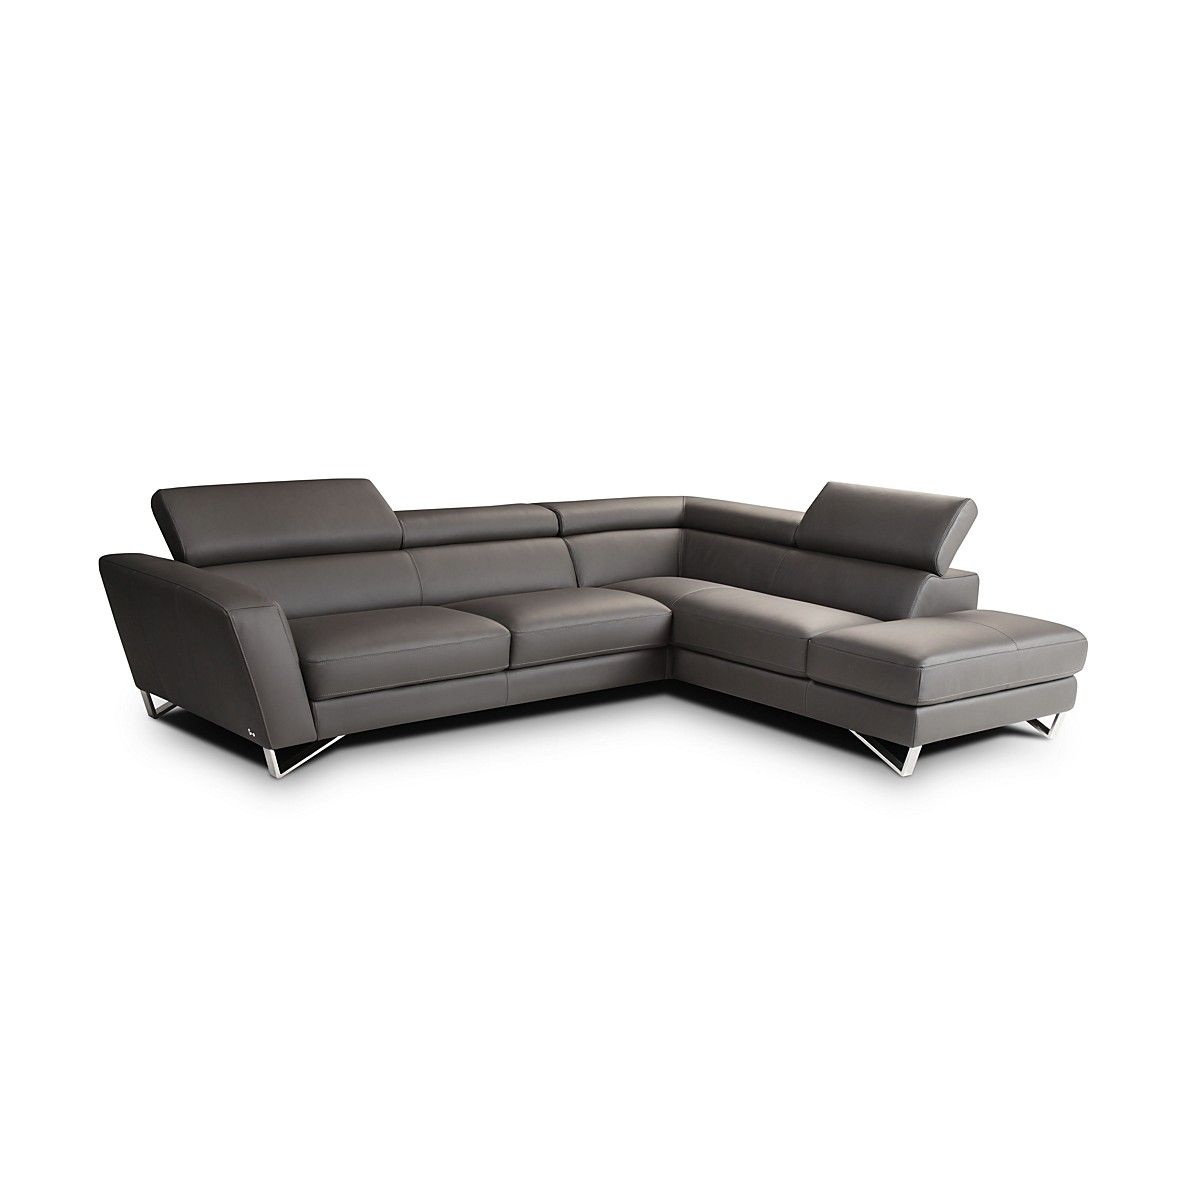 Bloomingdale\'s Delancey Sectional - Home - Bloomingdale\'s | For the ...